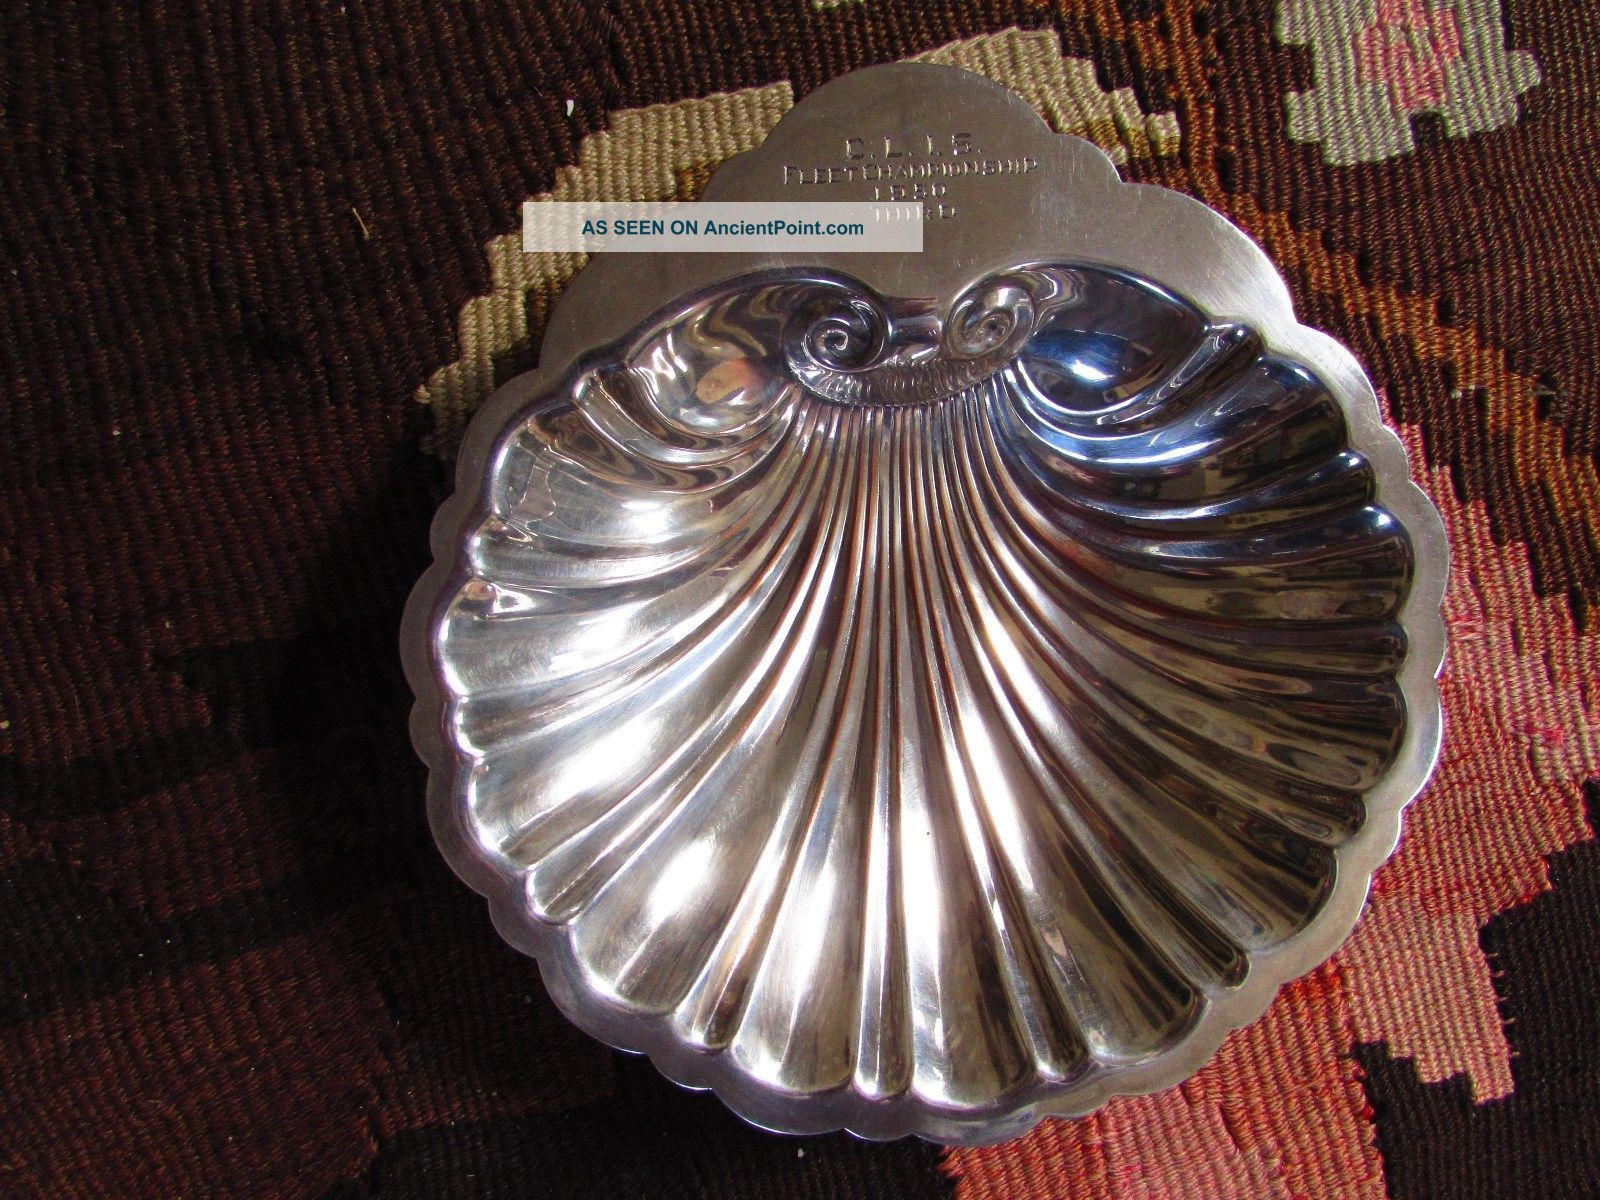 Rare,  Lovely 1950 C.  L.  I.  S Fleet Championship Award Sea Shell,  Prill Silver Co Plates & Chargers photo